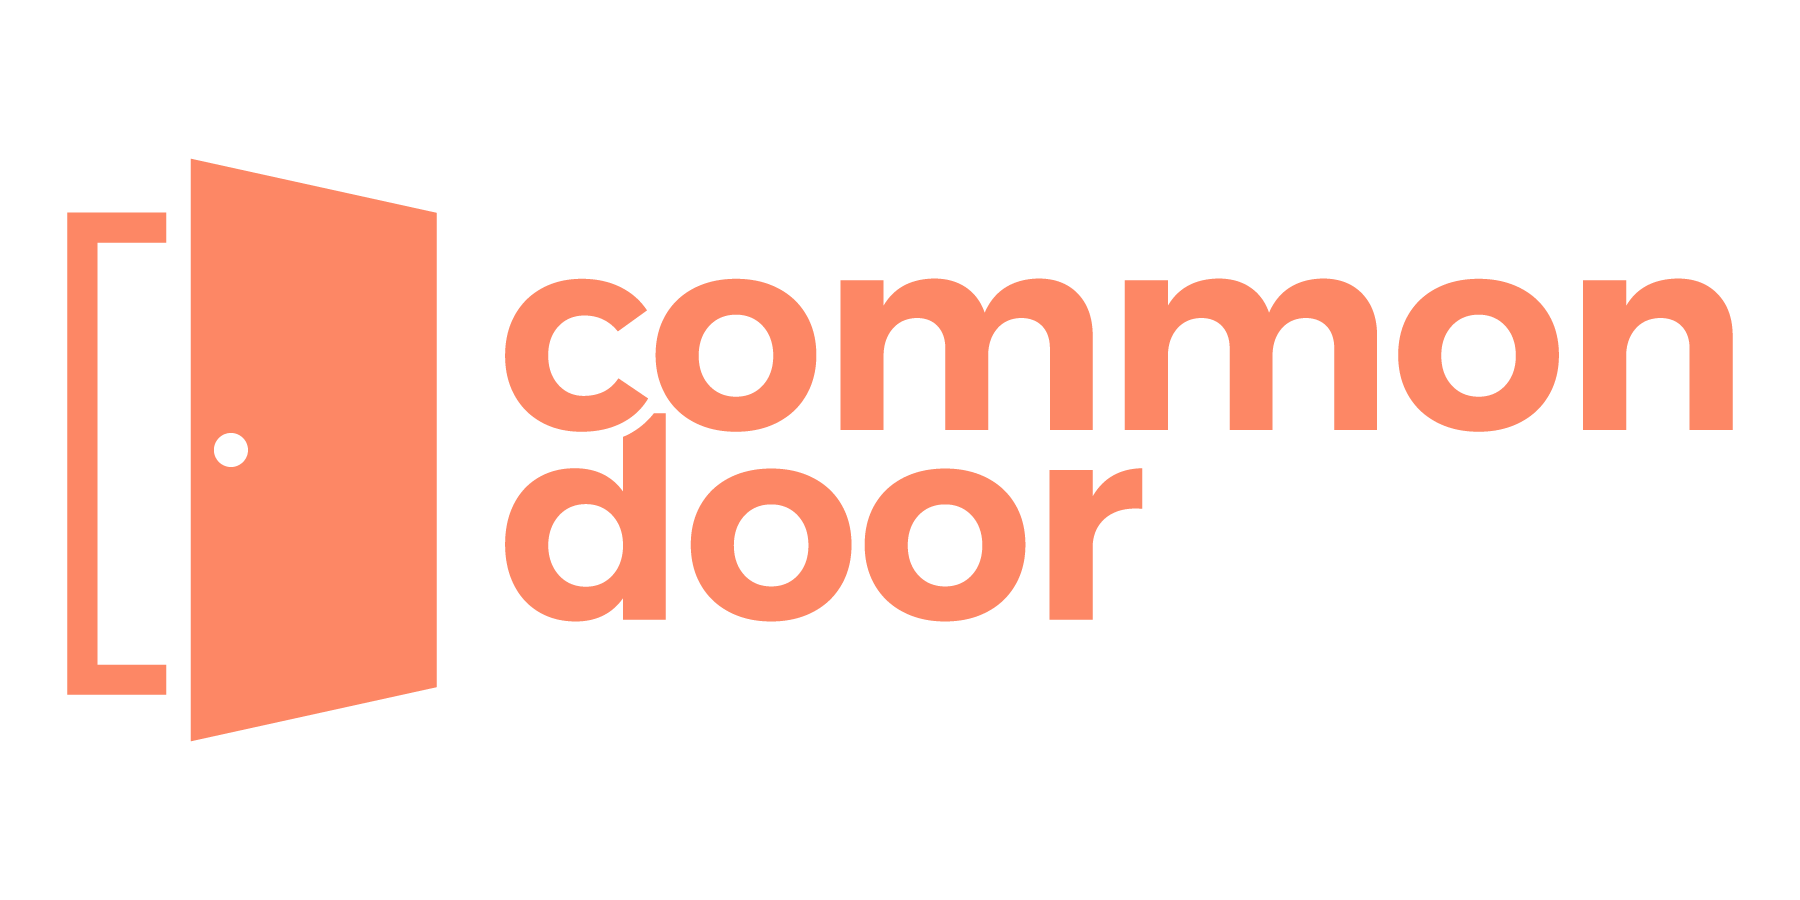 https://brittcreative.co/wp-content/uploads/2019/02/CommonDoor_MainLogo_Apricot.png